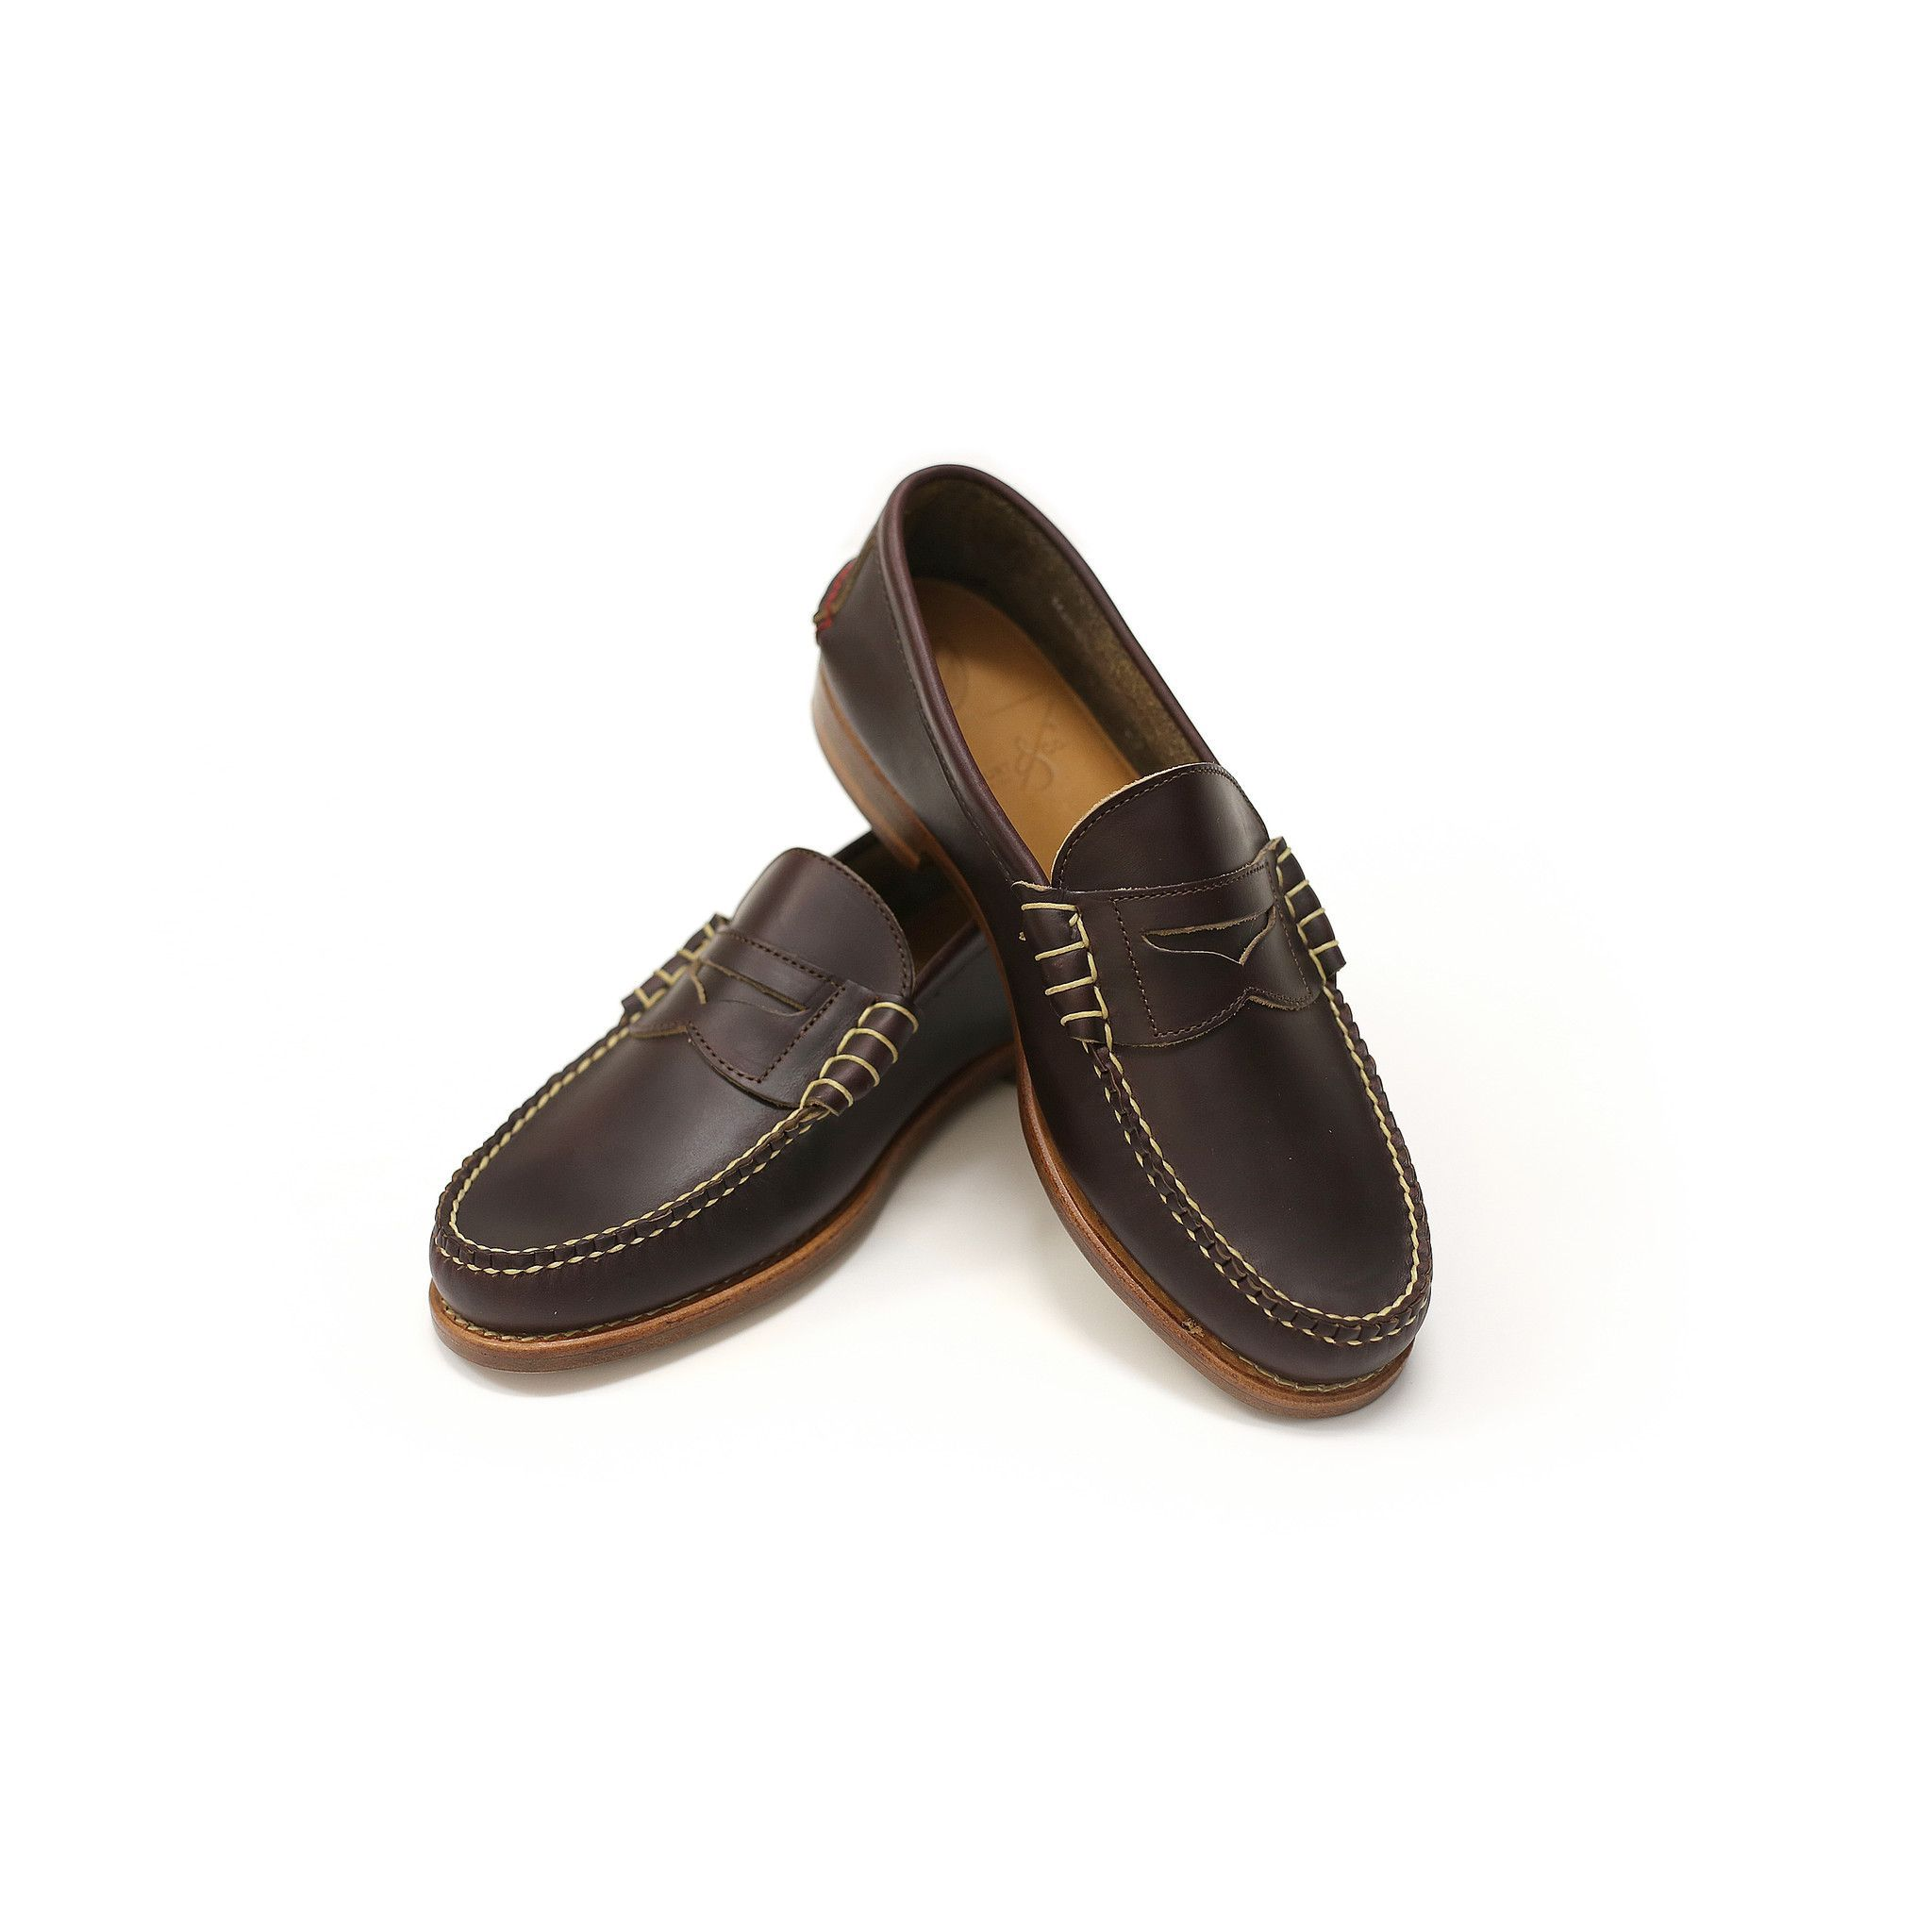 a81fc57b4b7 Rancourt x Cremieux Beefroll Penny - Loafers